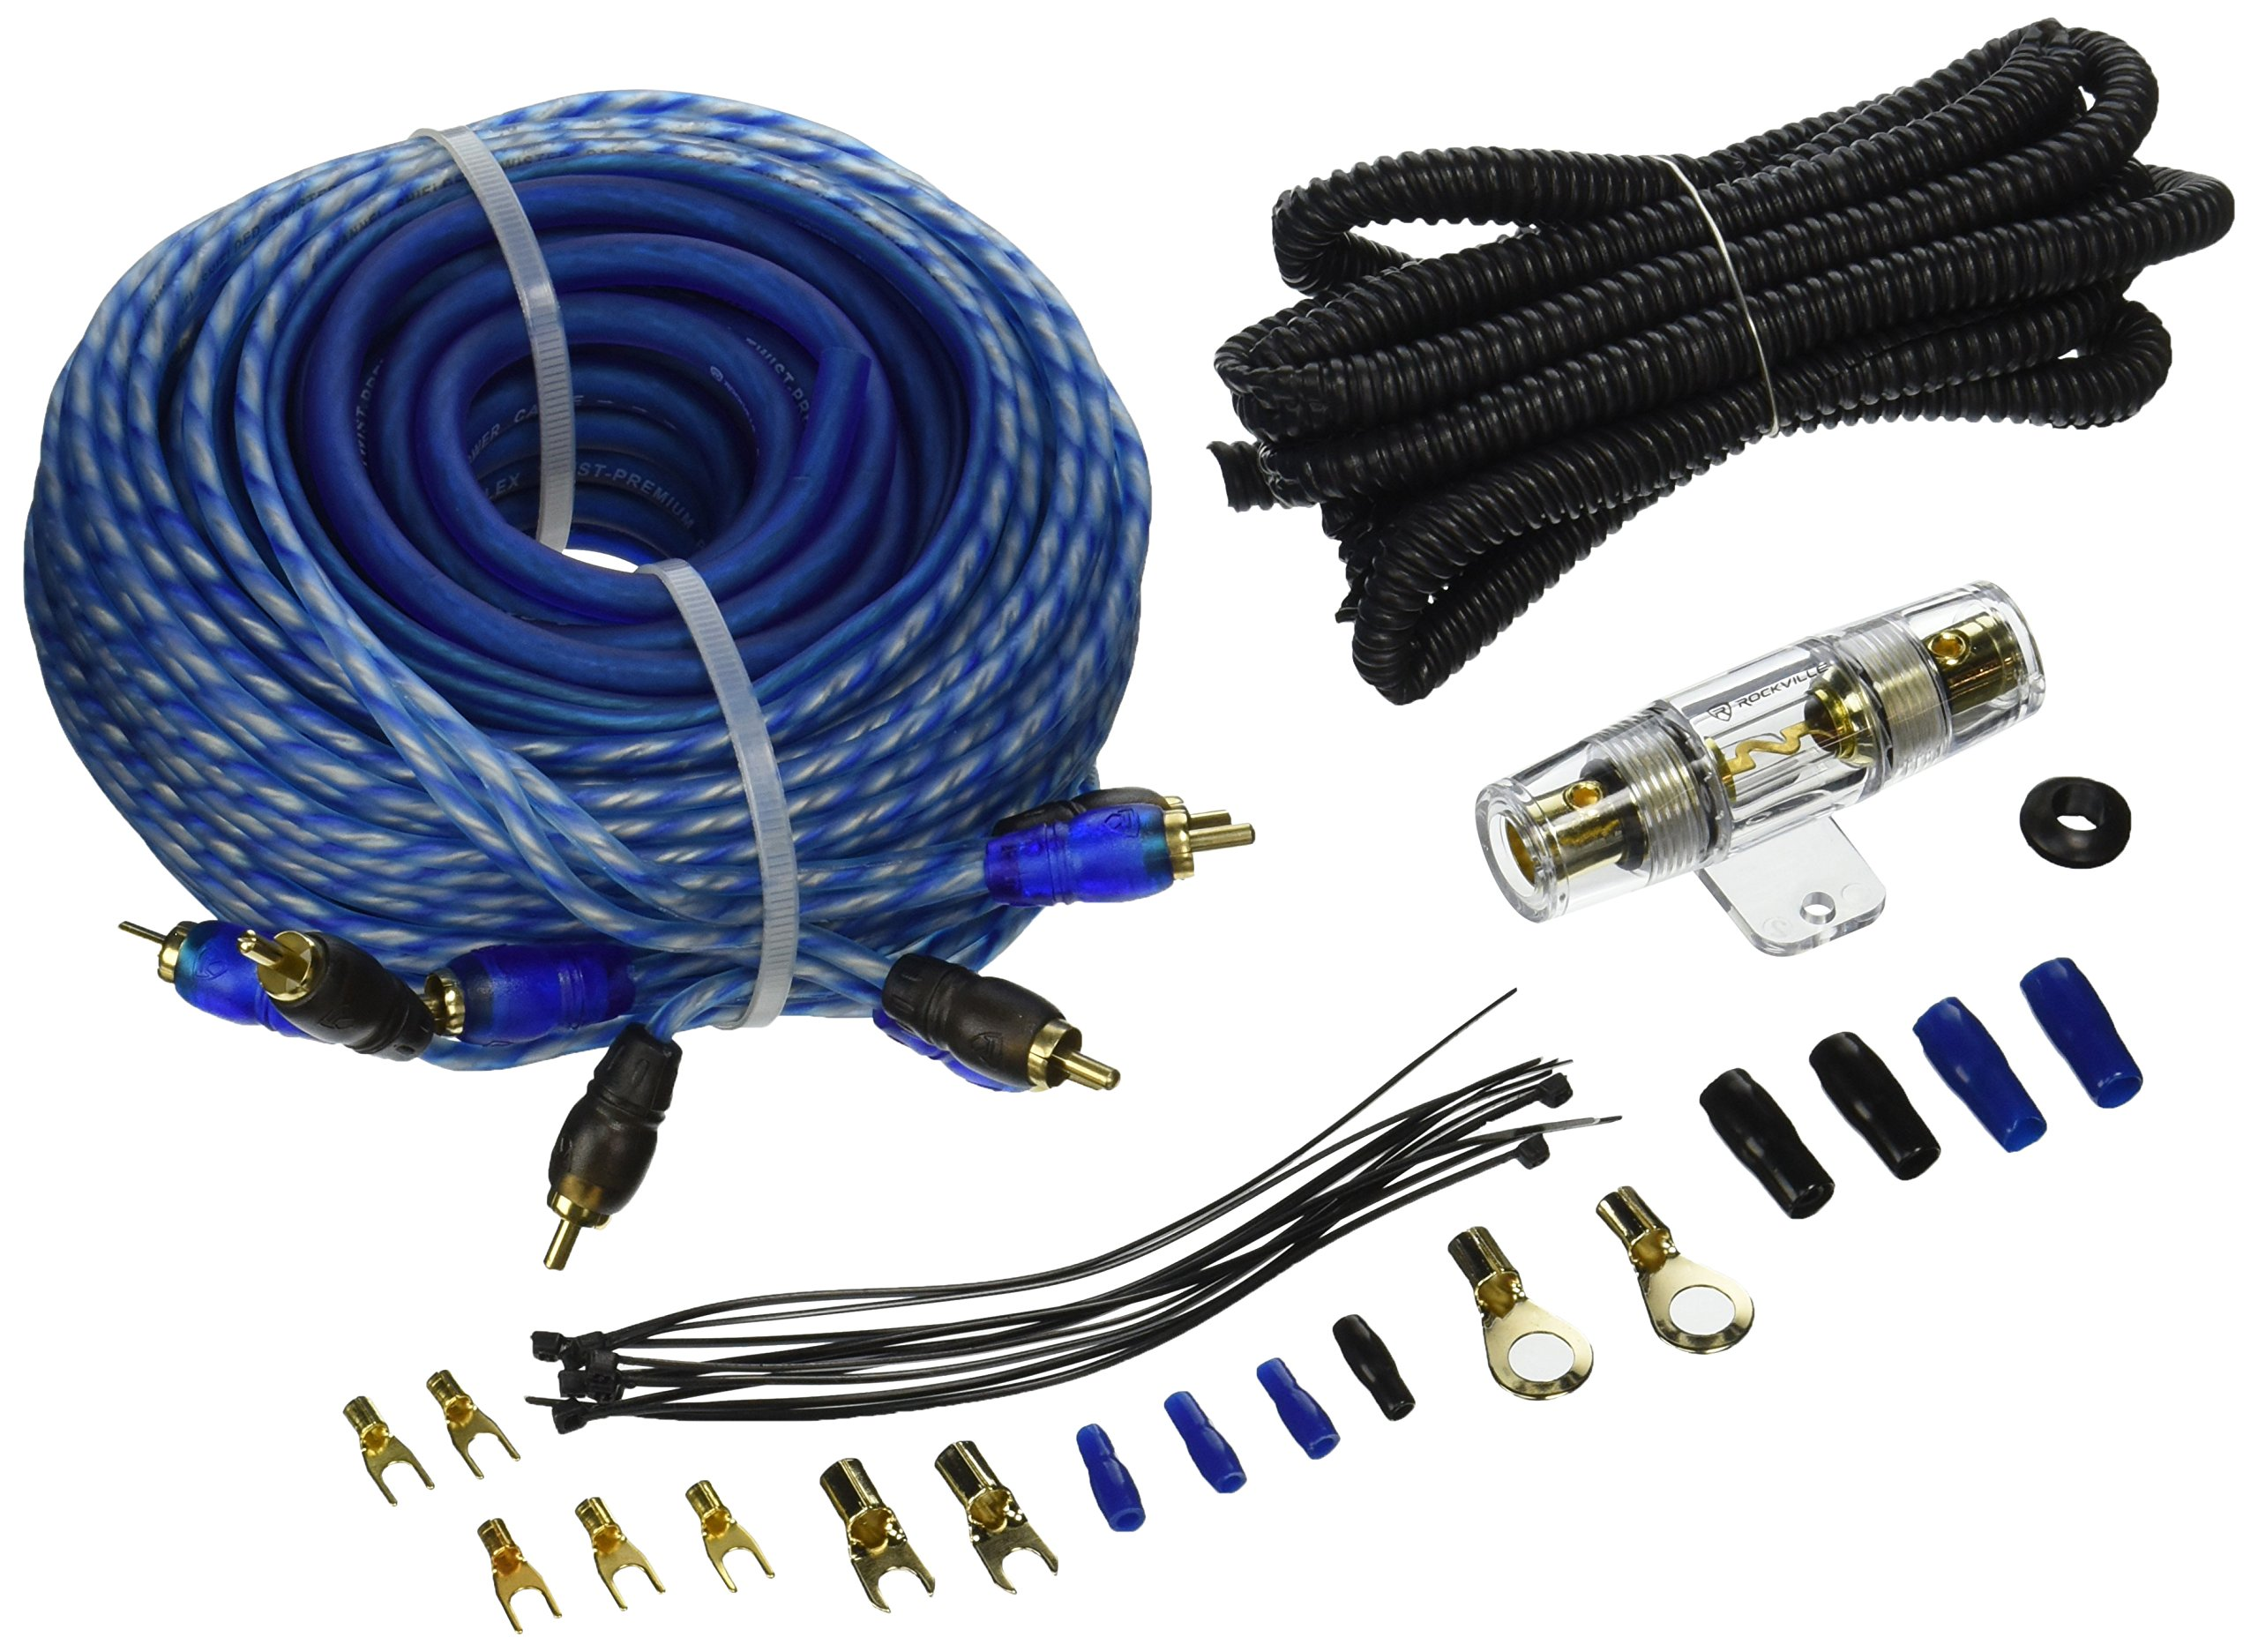 Pro 4 Gauge Amplifier Amp Install Wiring Kit Complete Car Audio Cables Cheap 0 Wire Find Deals On Line Get Quotations Rockville Rwk82 8 Chan Installation 2 Rcas